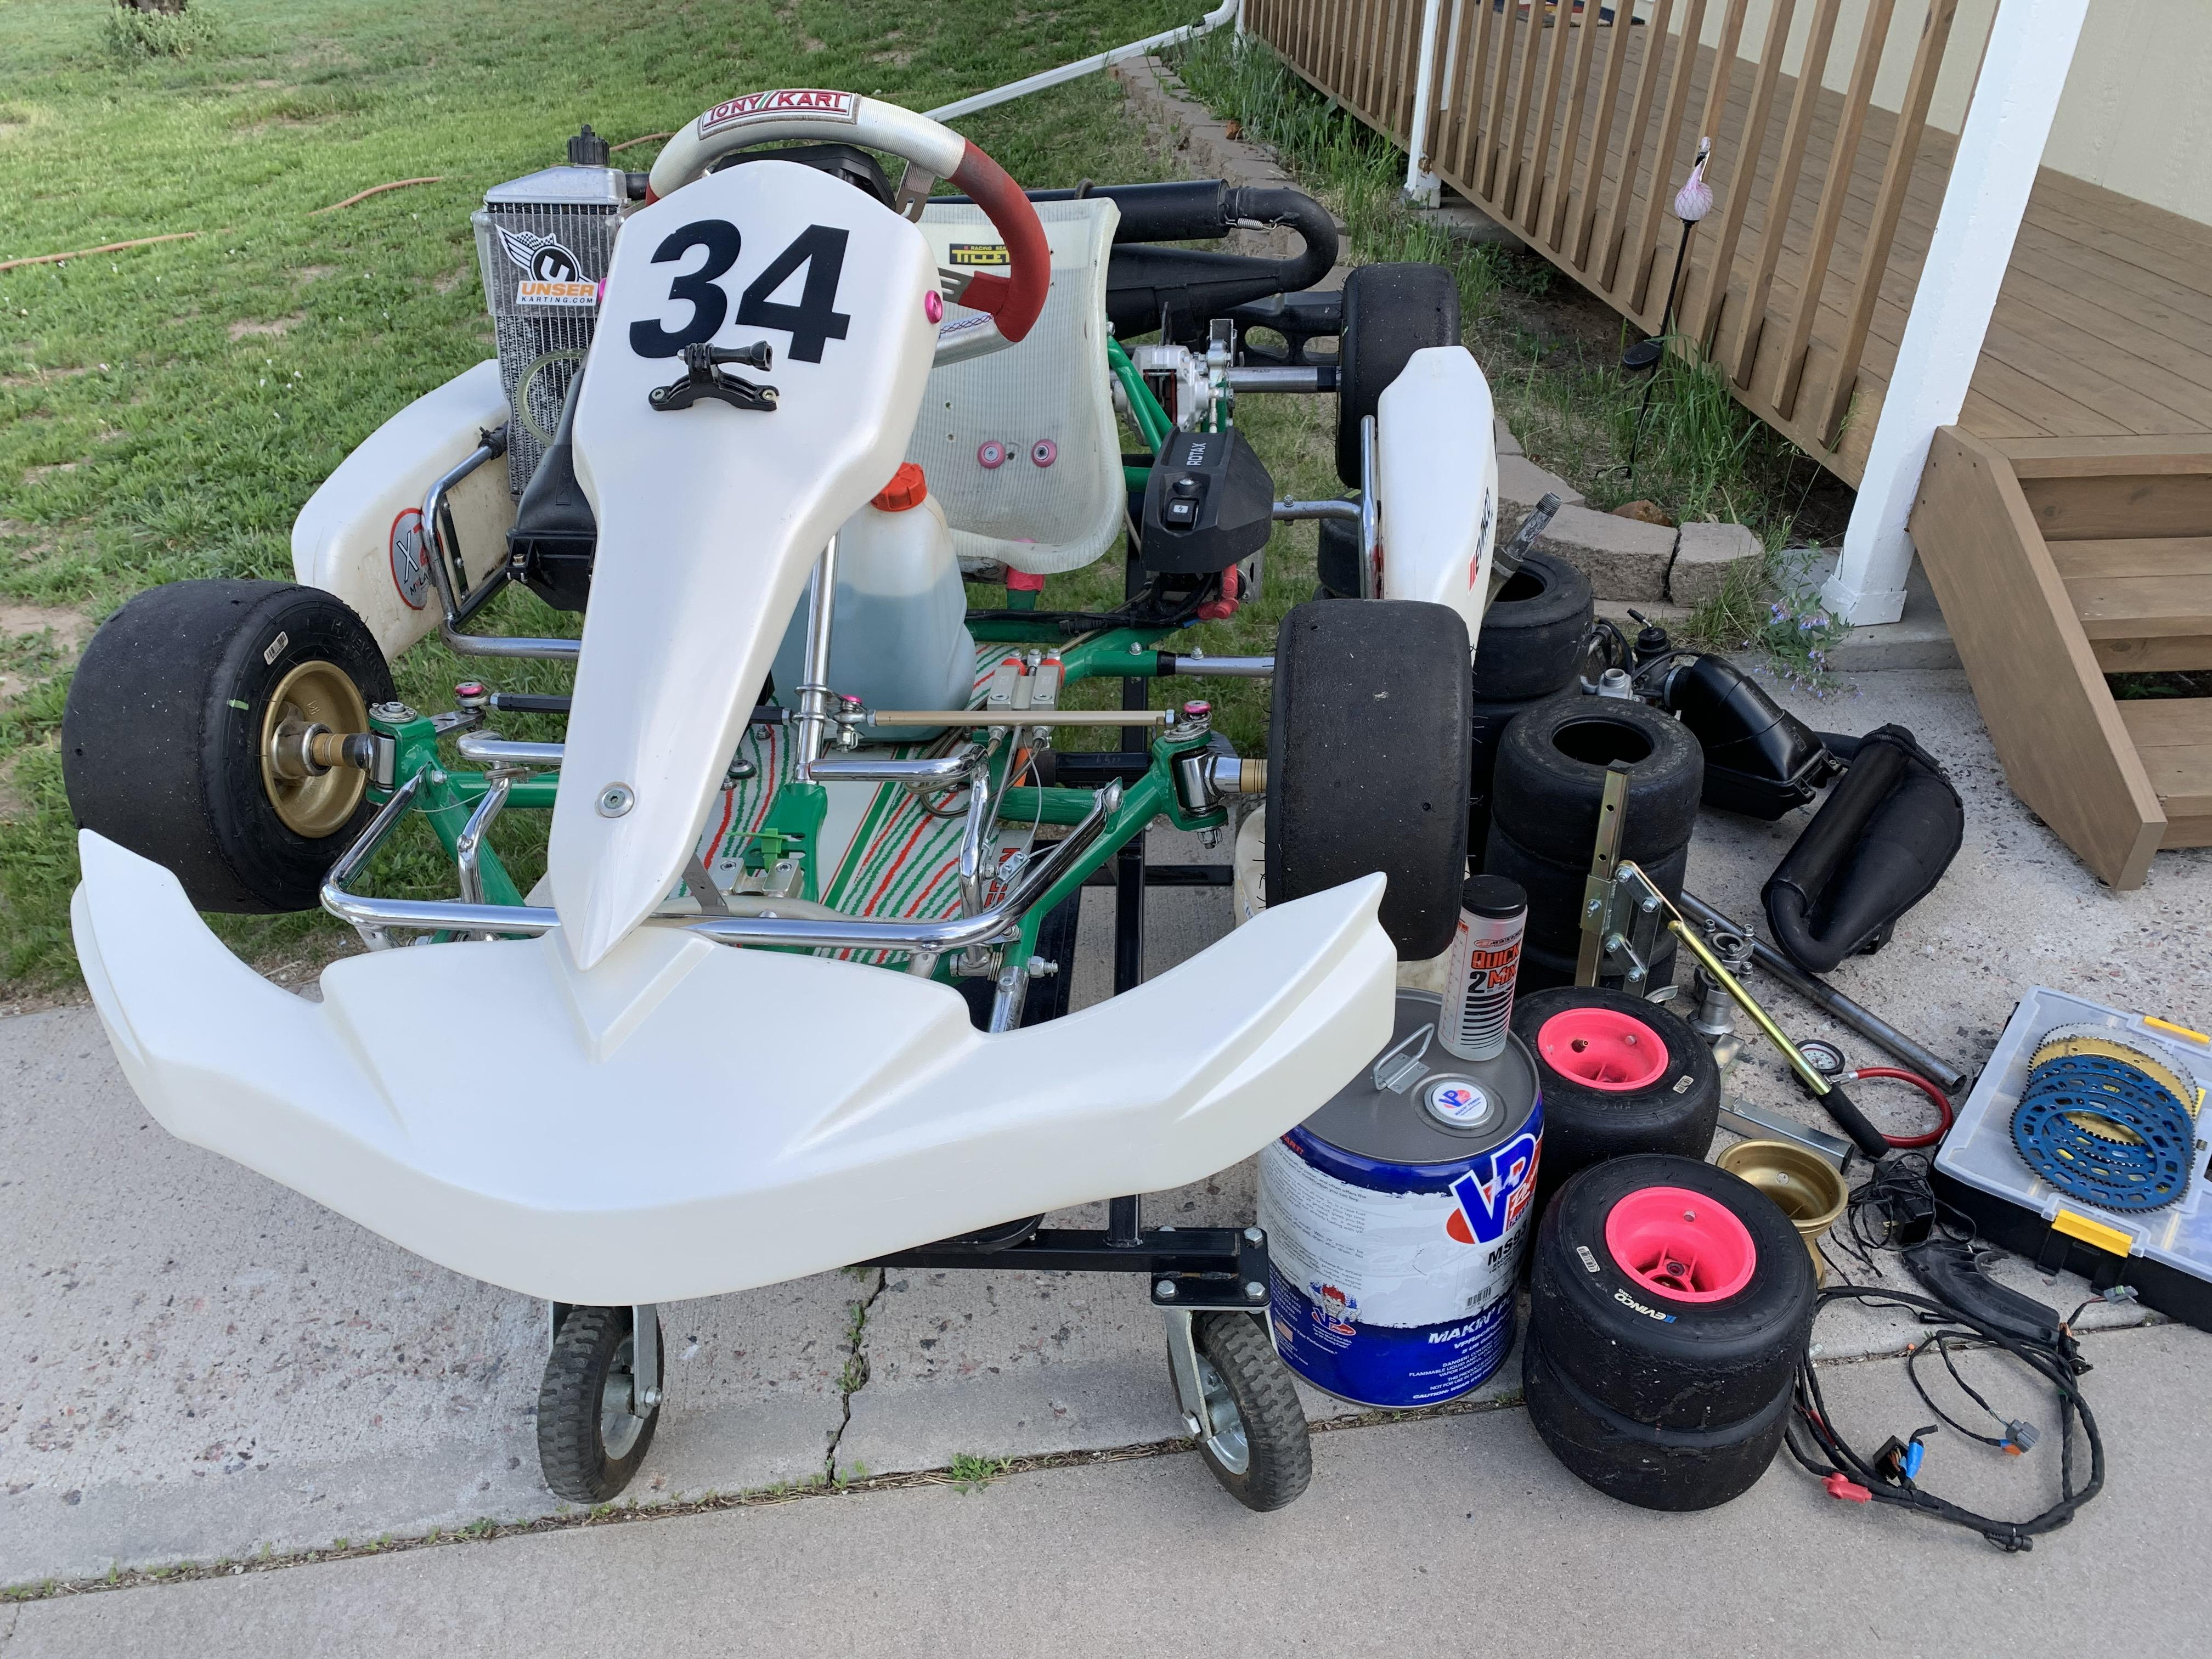 Kart and Extras